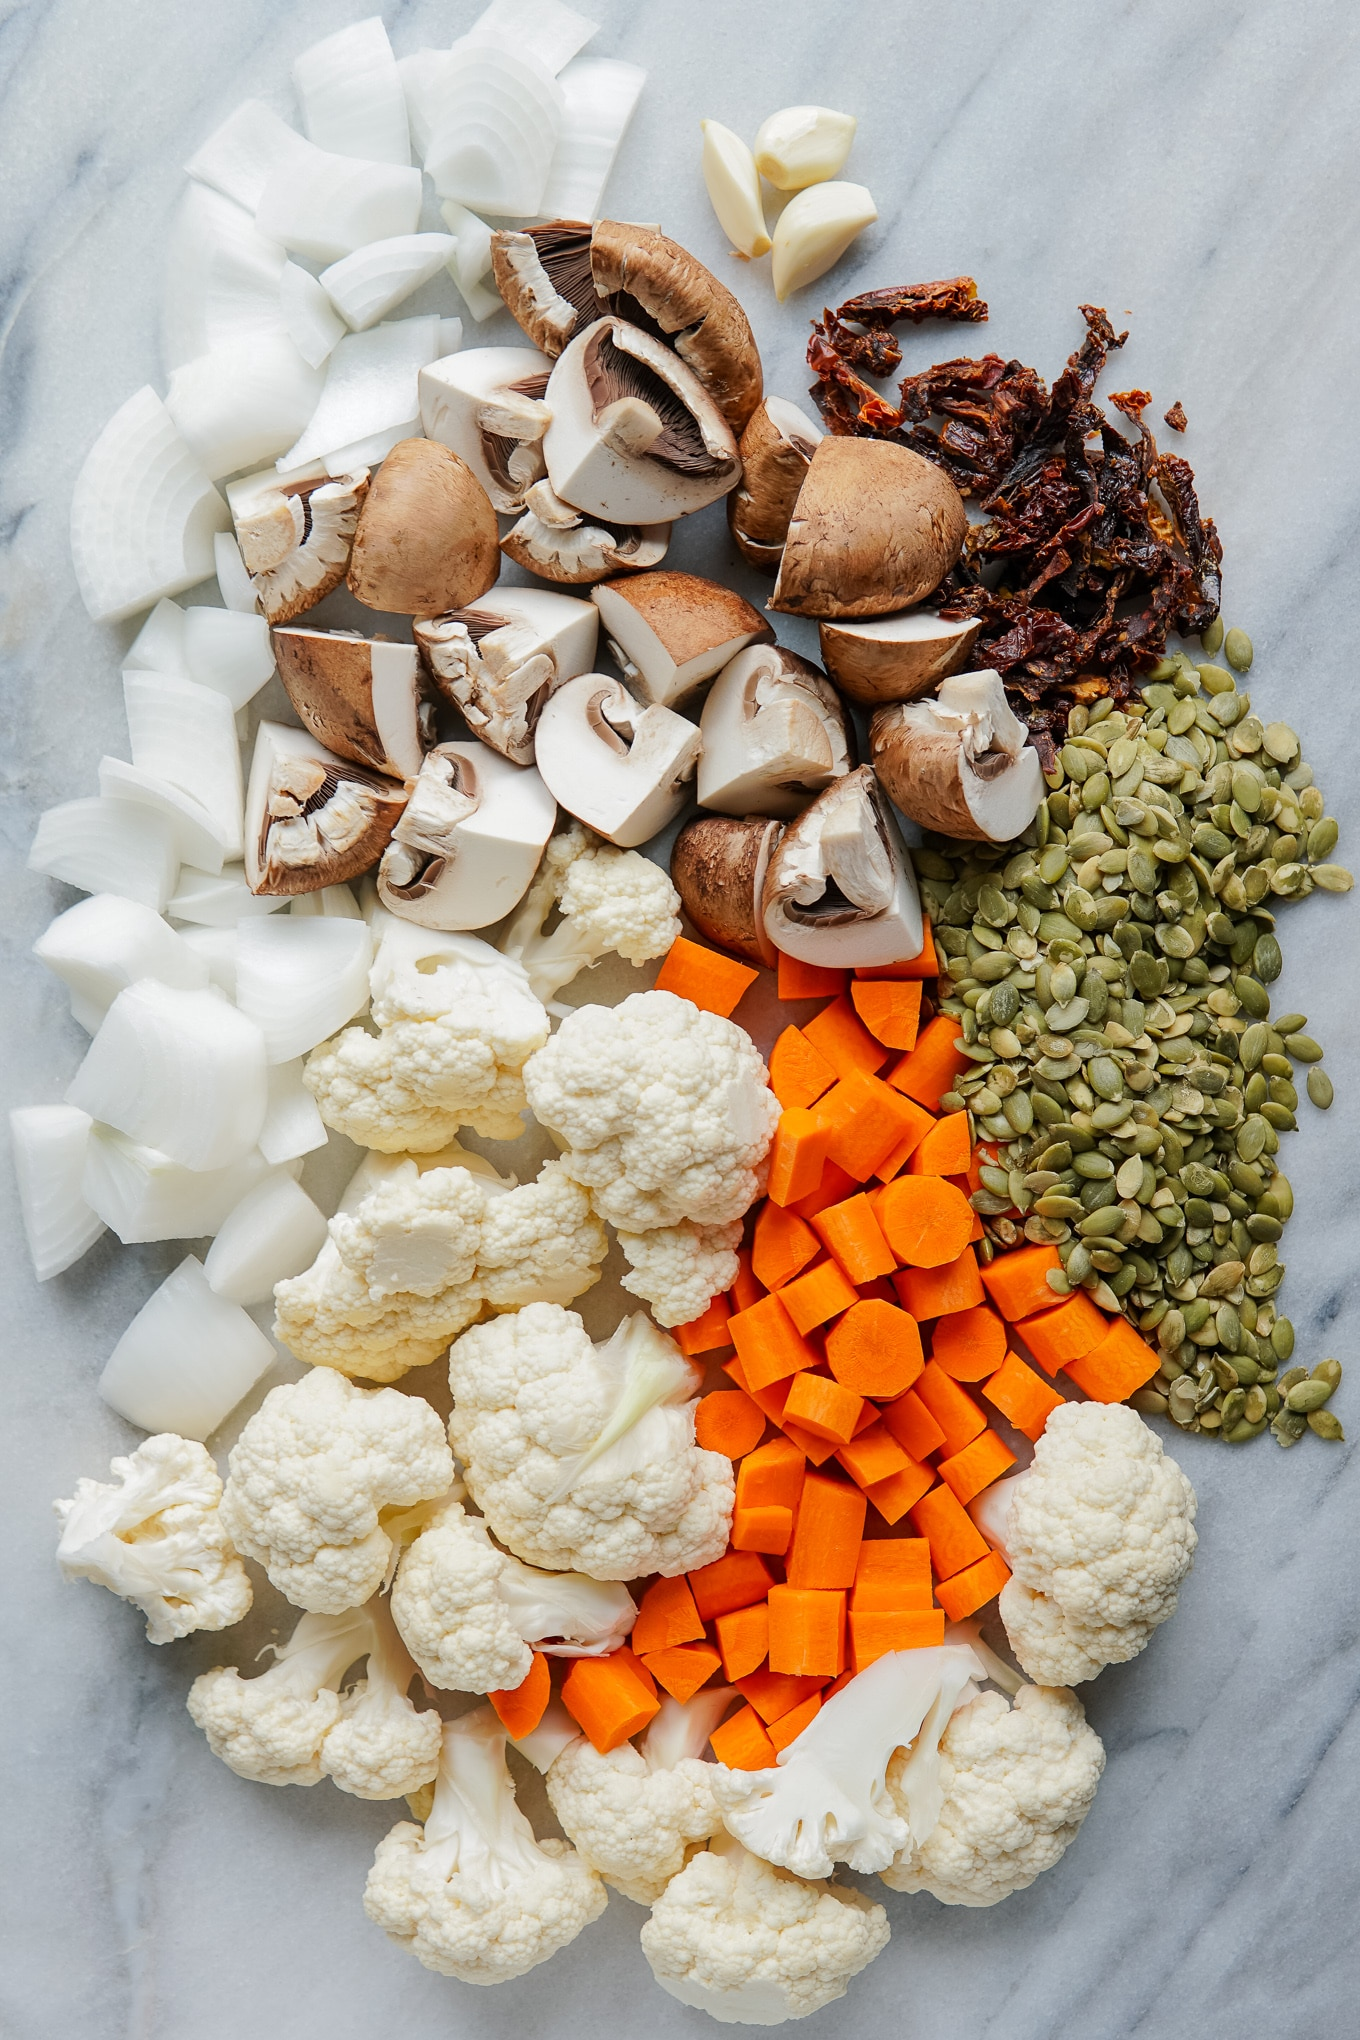 ingredients for vegan ground beef - onion, mushroom, cauliflower, carrots, pepitas (pumpkin seeds), sun-dried tomatoes, garlic)